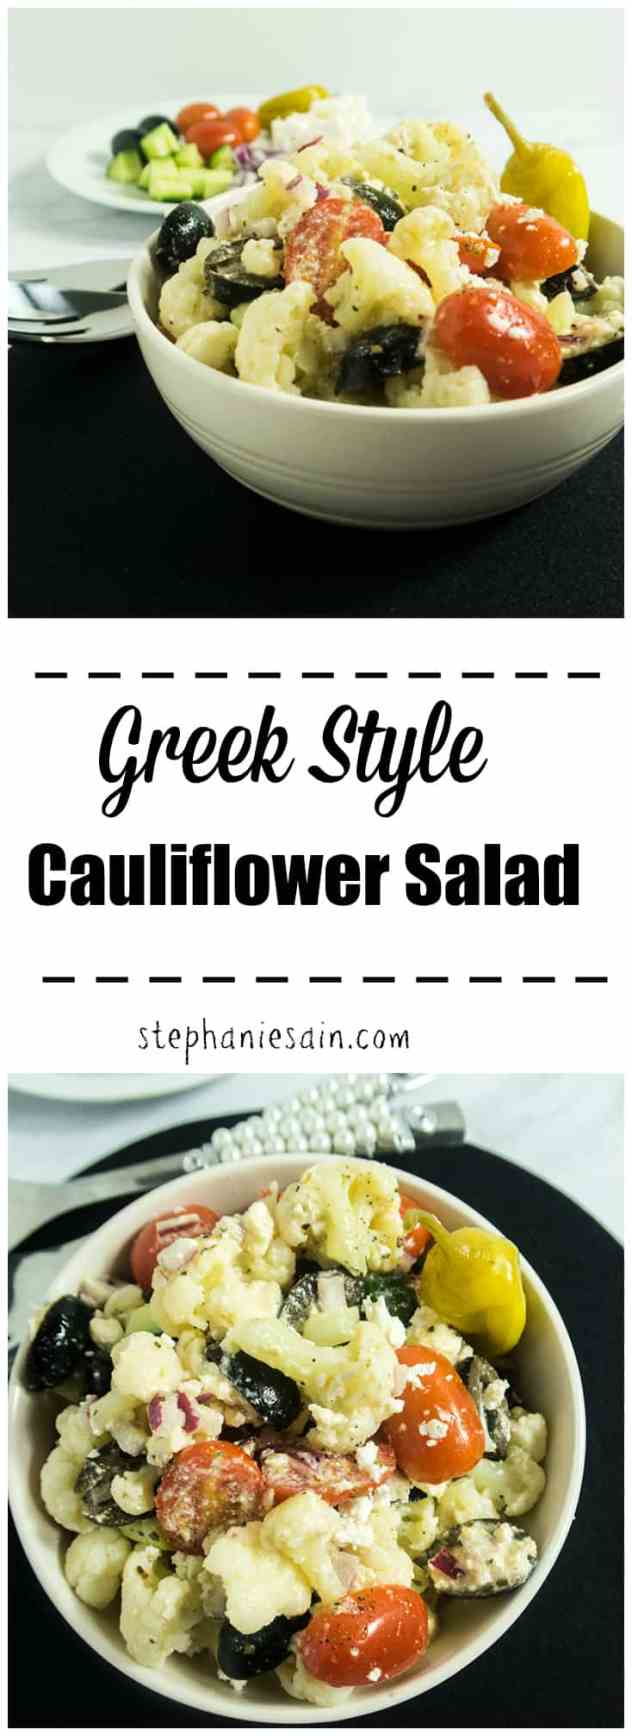 This Greek Style Cauliflower Salad is a tasty, light make ahead salad loaded with cauliflower and a greek dressing. Vegetarian & Gluten Free.